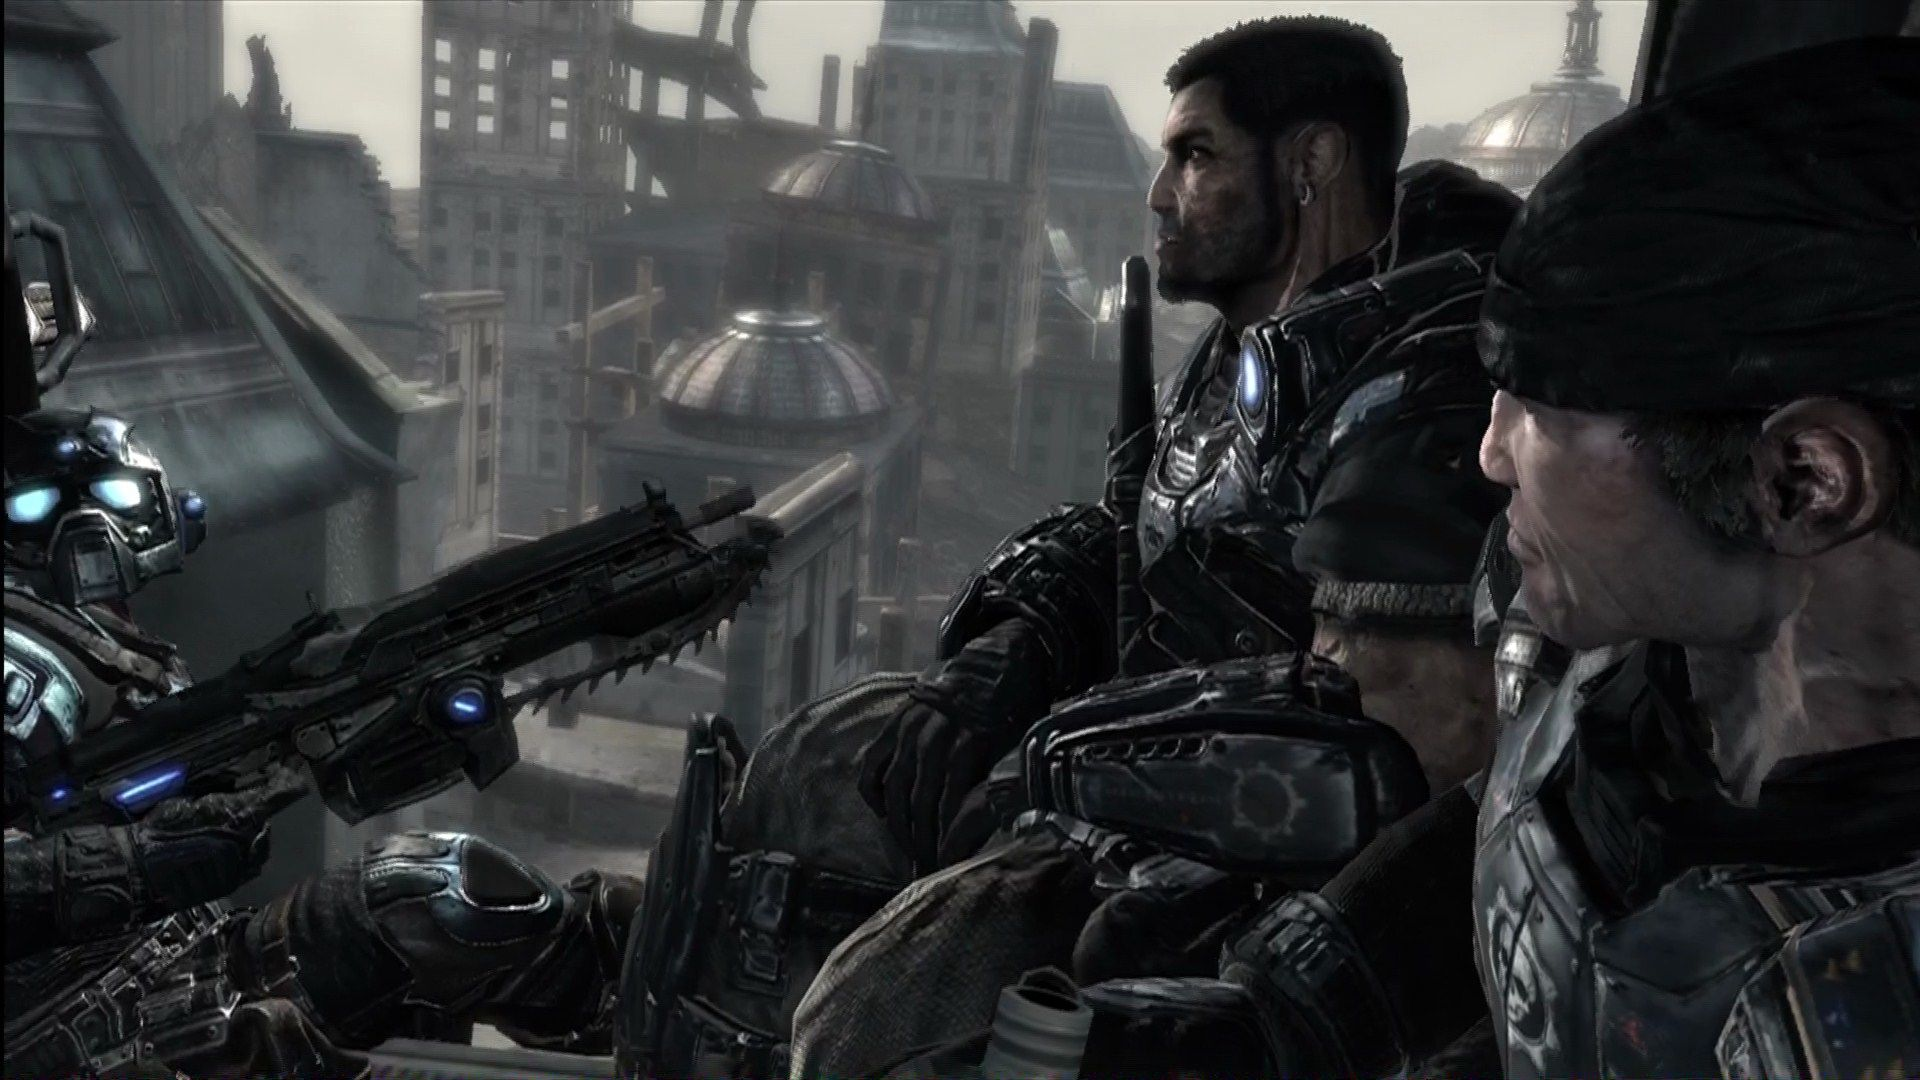 Gears of War Xbox 360 Dom and a rookie chat it up